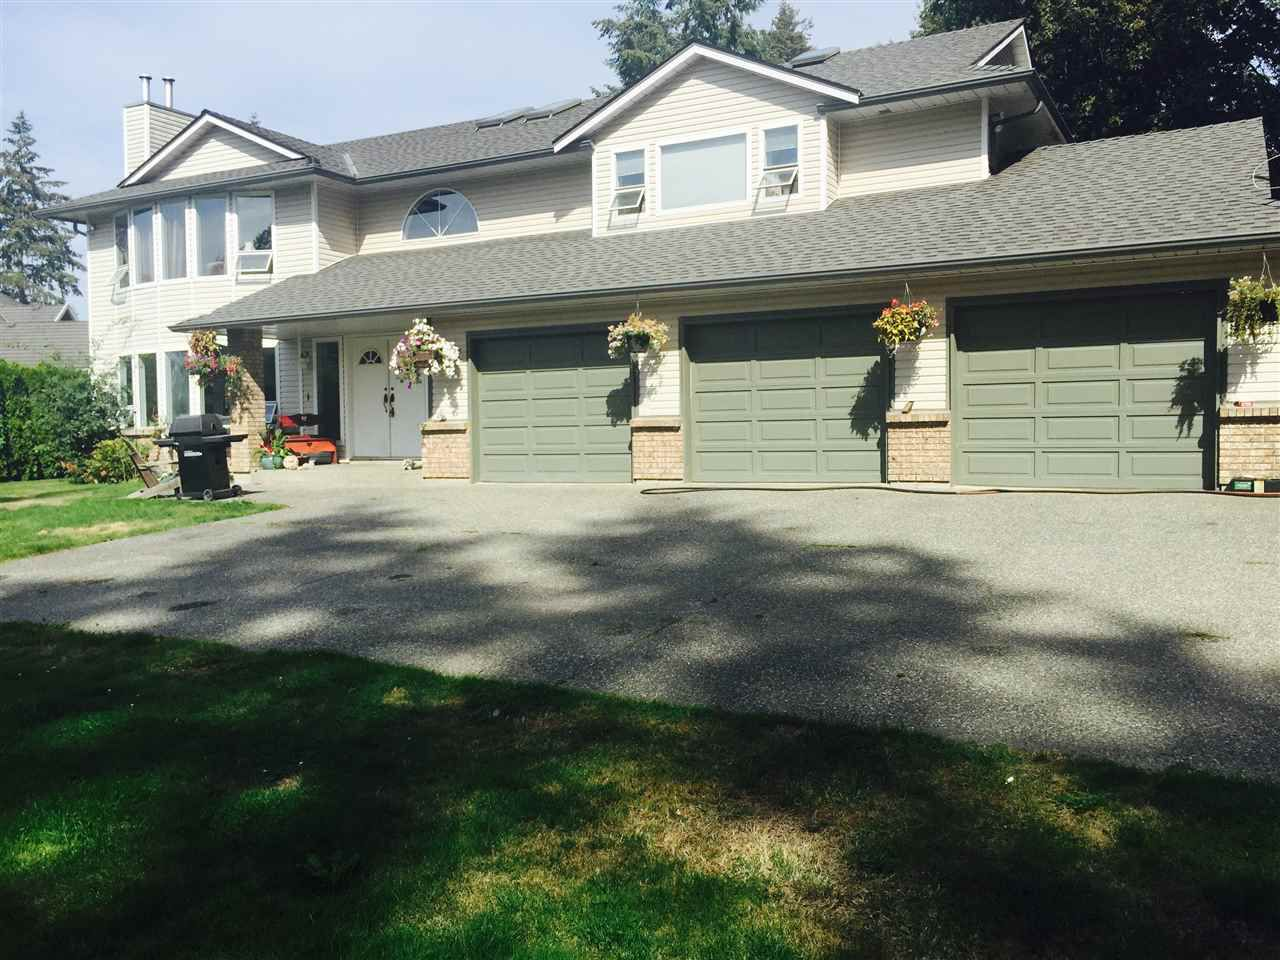 Main Photo: 5517 125A Street in Surrey: Panorama Ridge House for sale : MLS®# R2108781